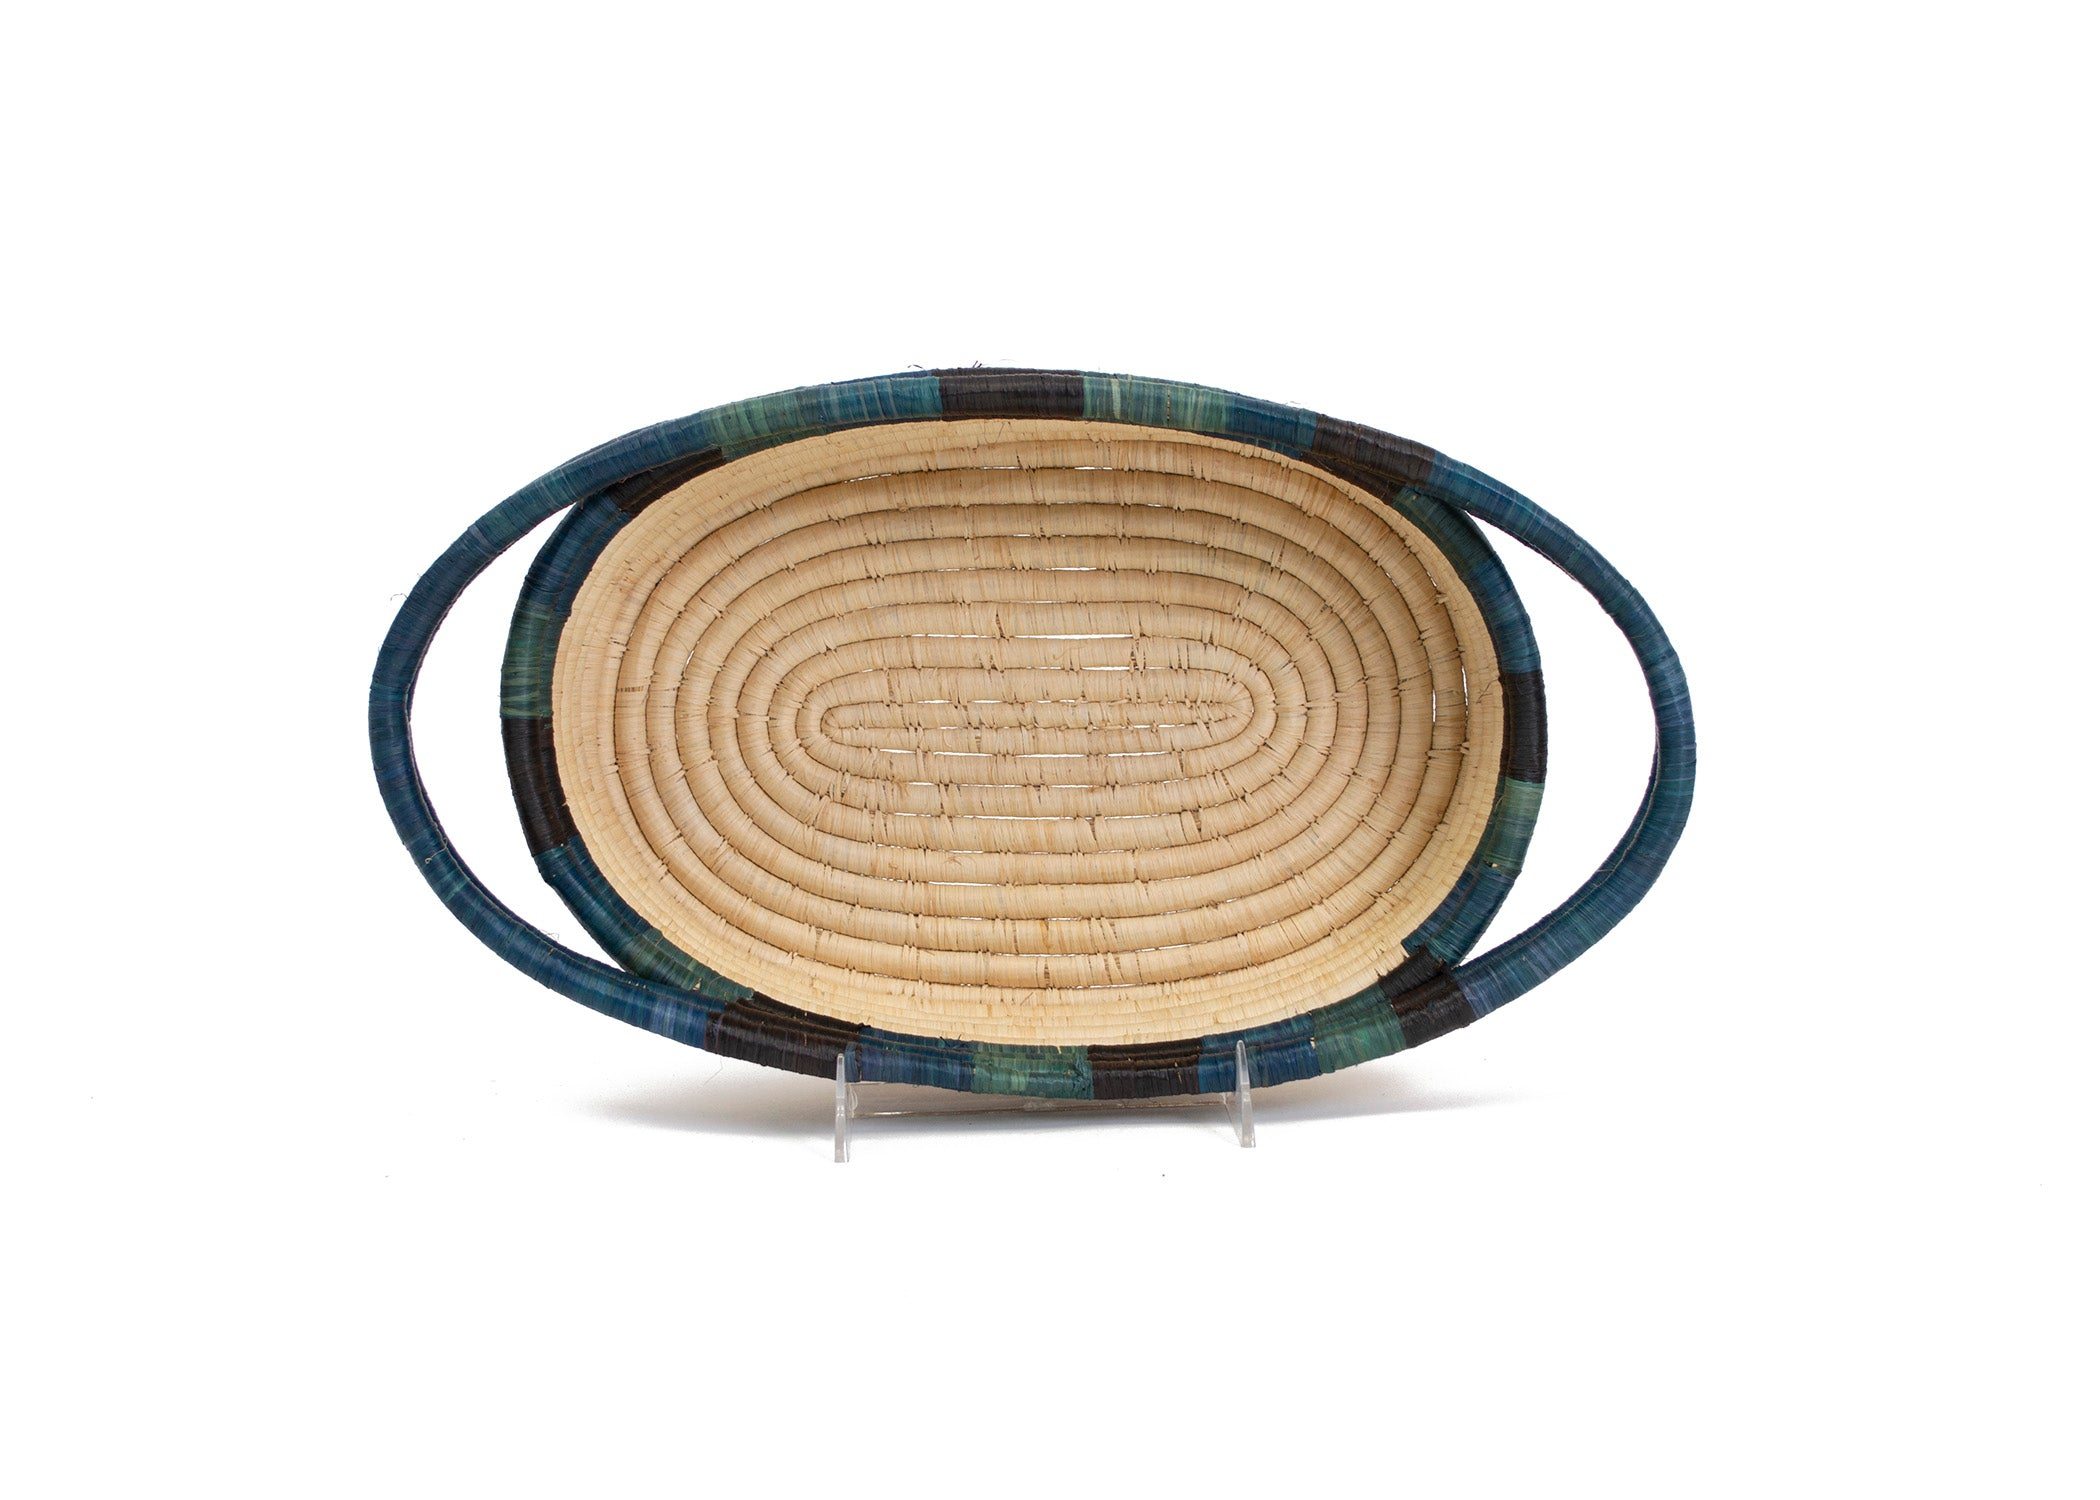 Cool Color Blocked Dipped Raffia Oval Basket - KAZI - Artisan made high quality home decor and wall art